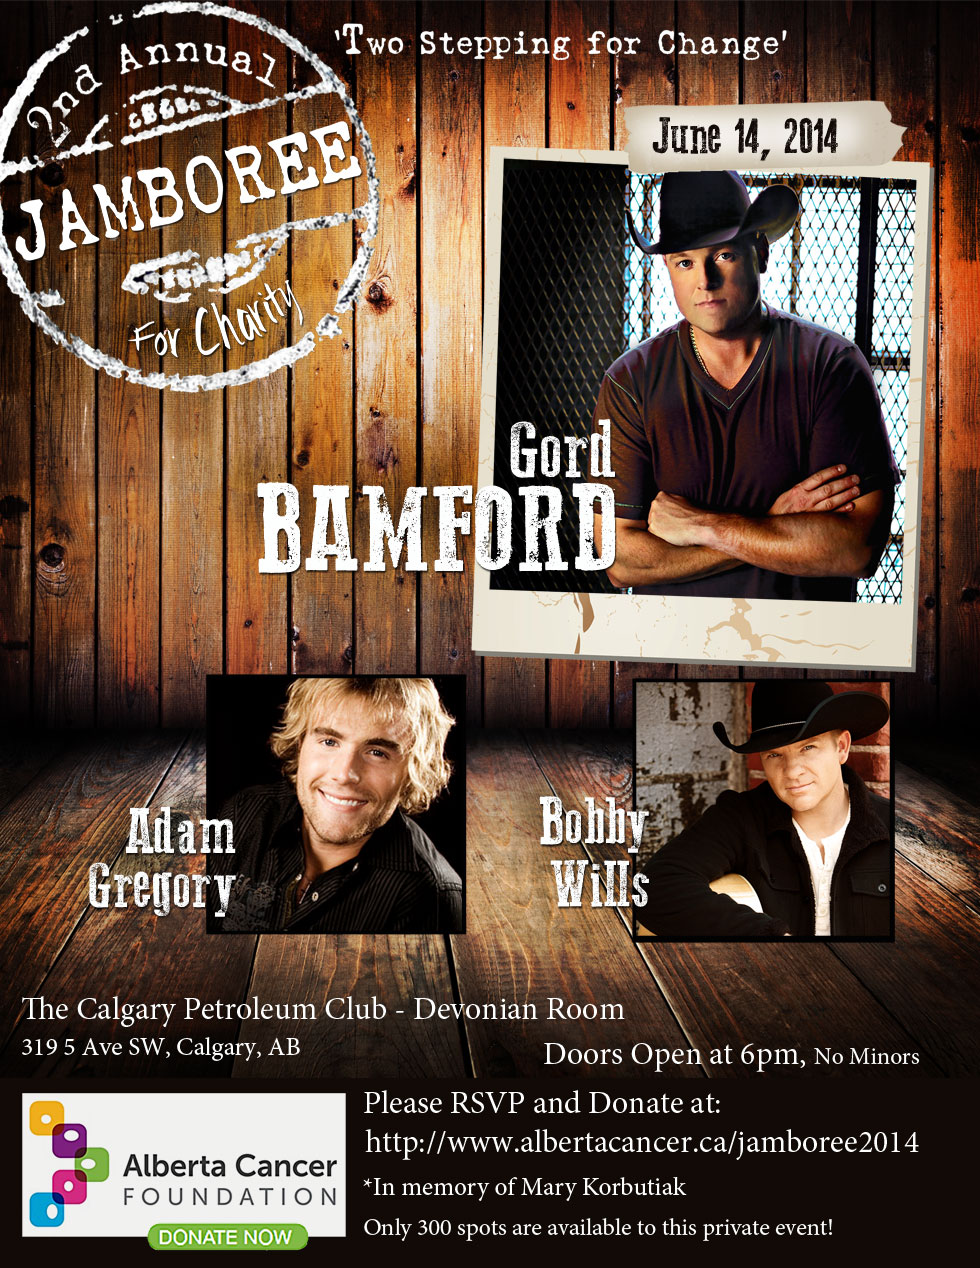 Annual Jamboree For Charity 2014